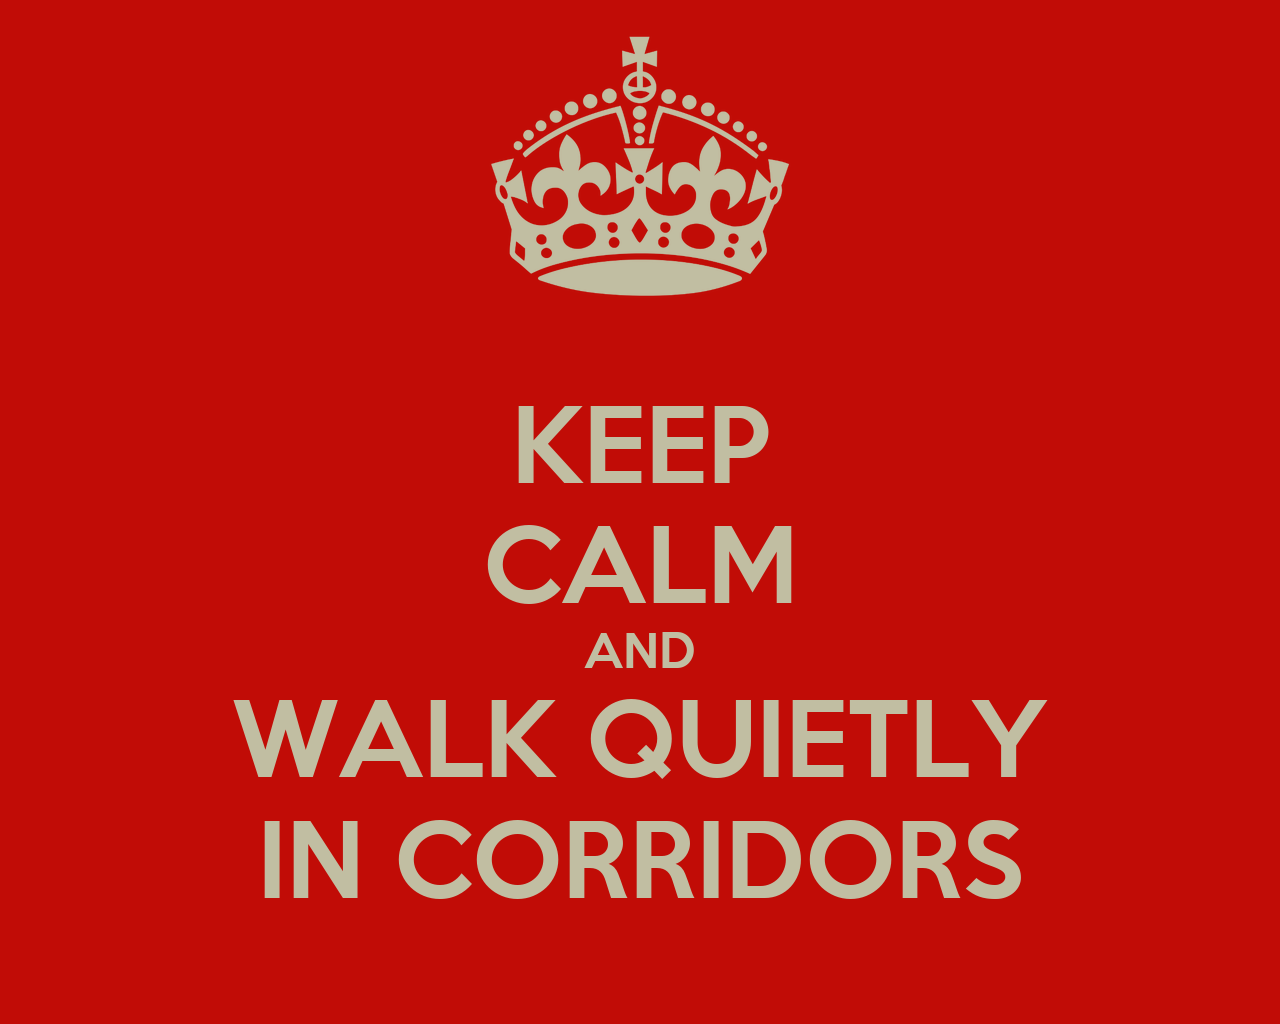 keep calm and walk quietly in corridors poster mr d entwisle keep calm o matic. Black Bedroom Furniture Sets. Home Design Ideas